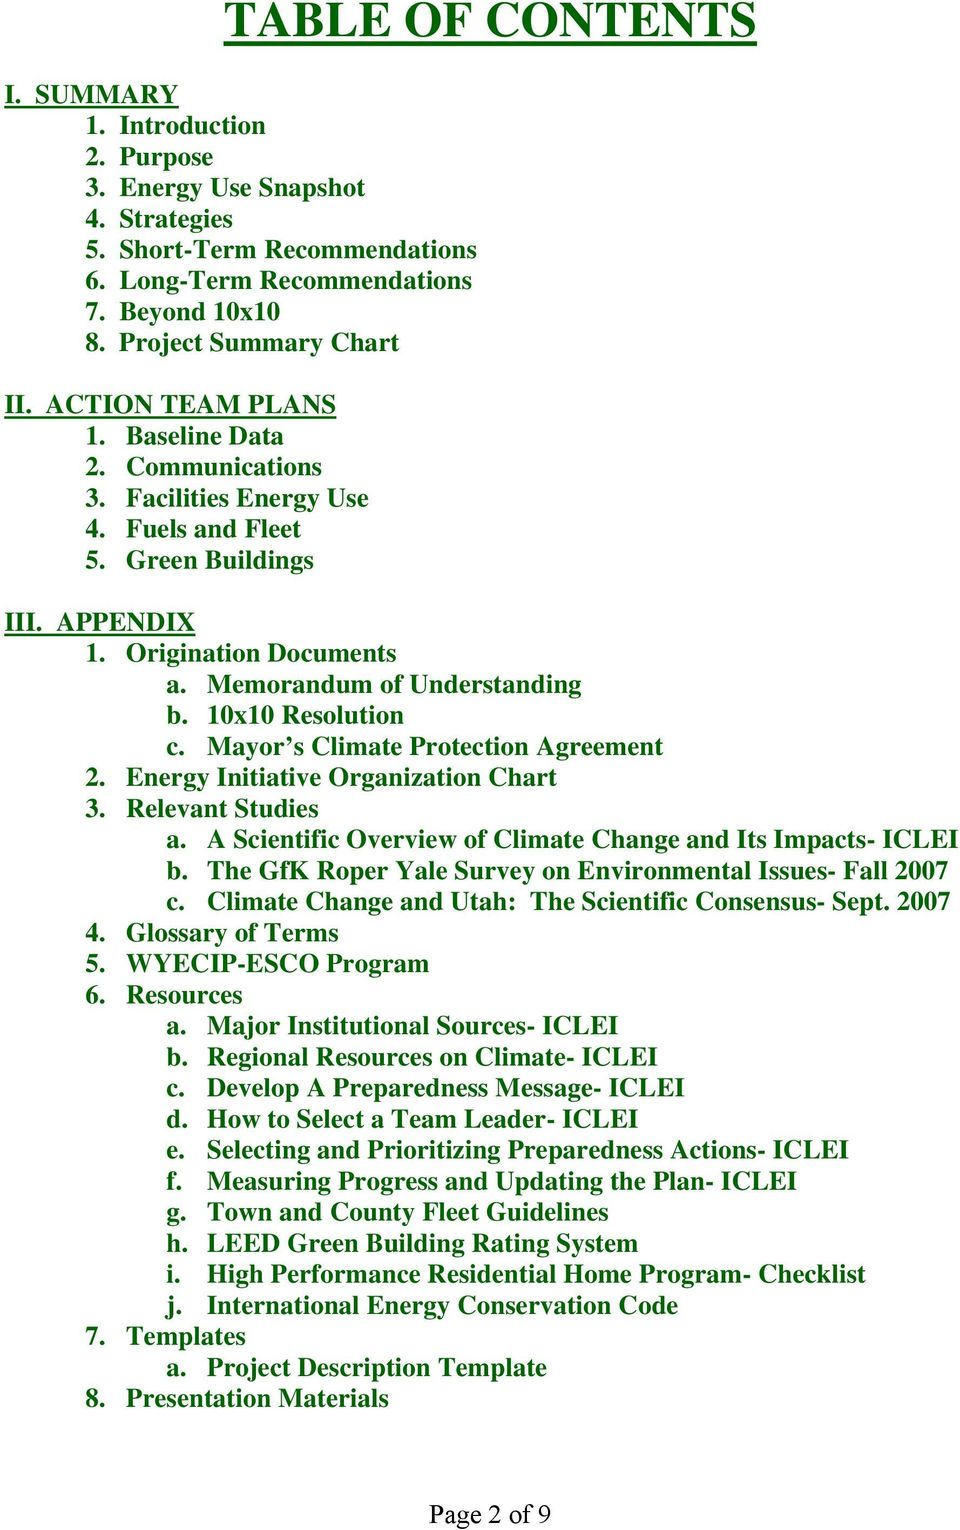 10x10 Resolution c. Mayor s Climate Protection Agreement 2. Energy Initiative Organization Chart 3. Relevant Studies a. A Scientific Overview of Climate Change and Its Impacts- ICLEI b.